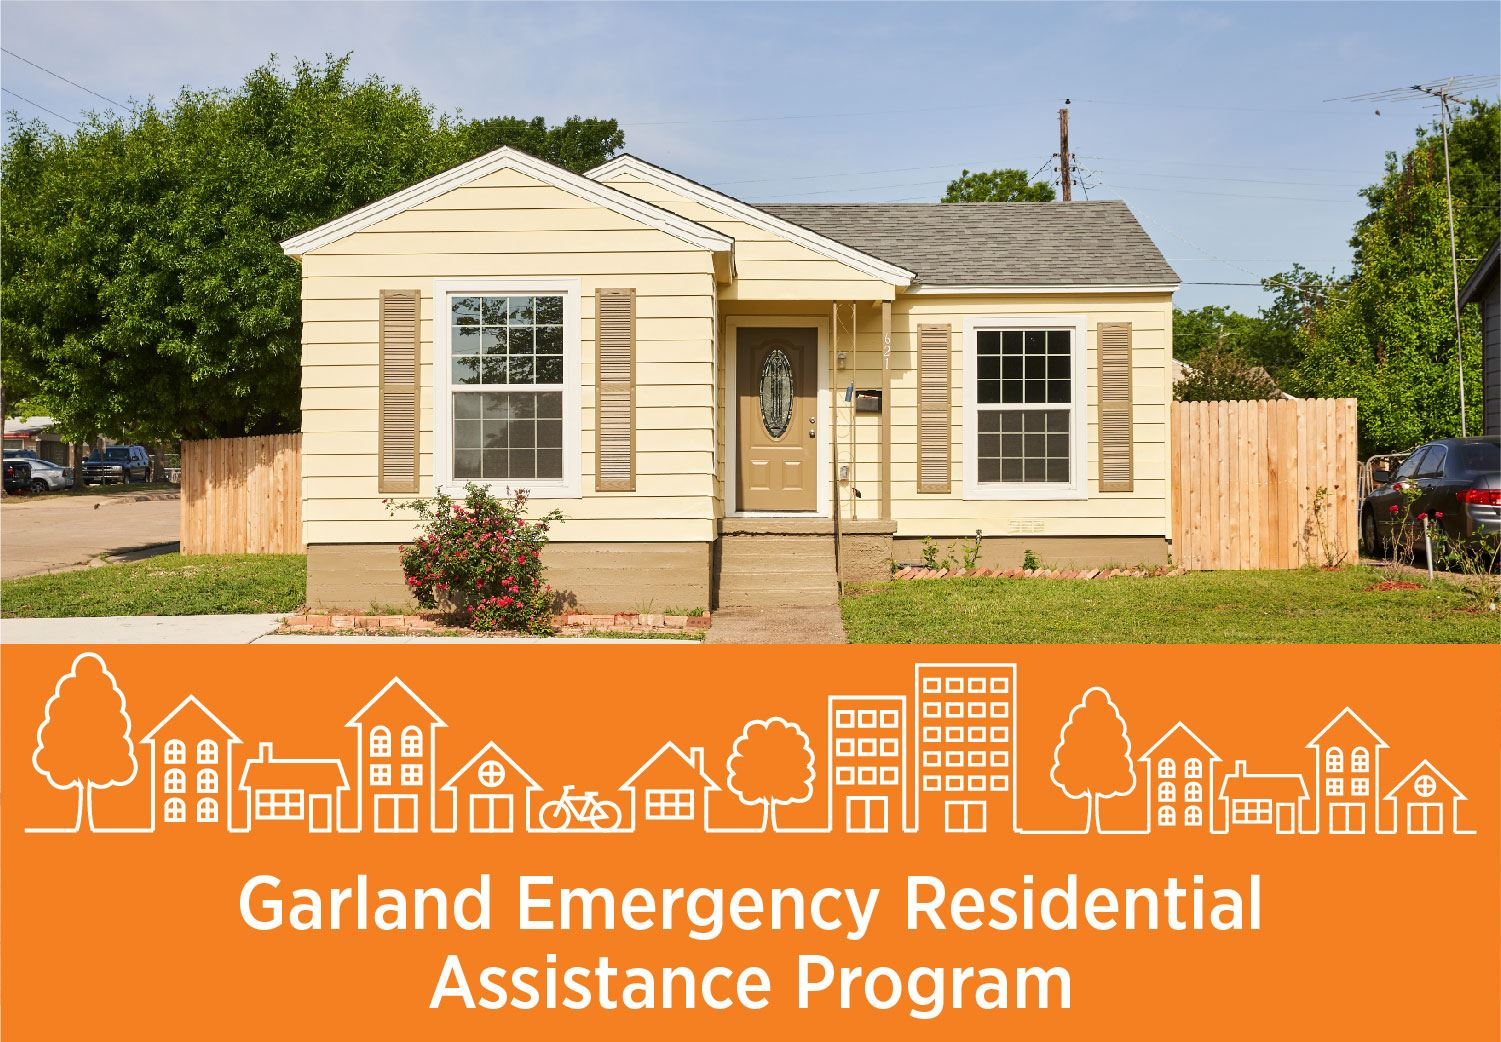 Garland Emergency Residential Assistance Program_360x250